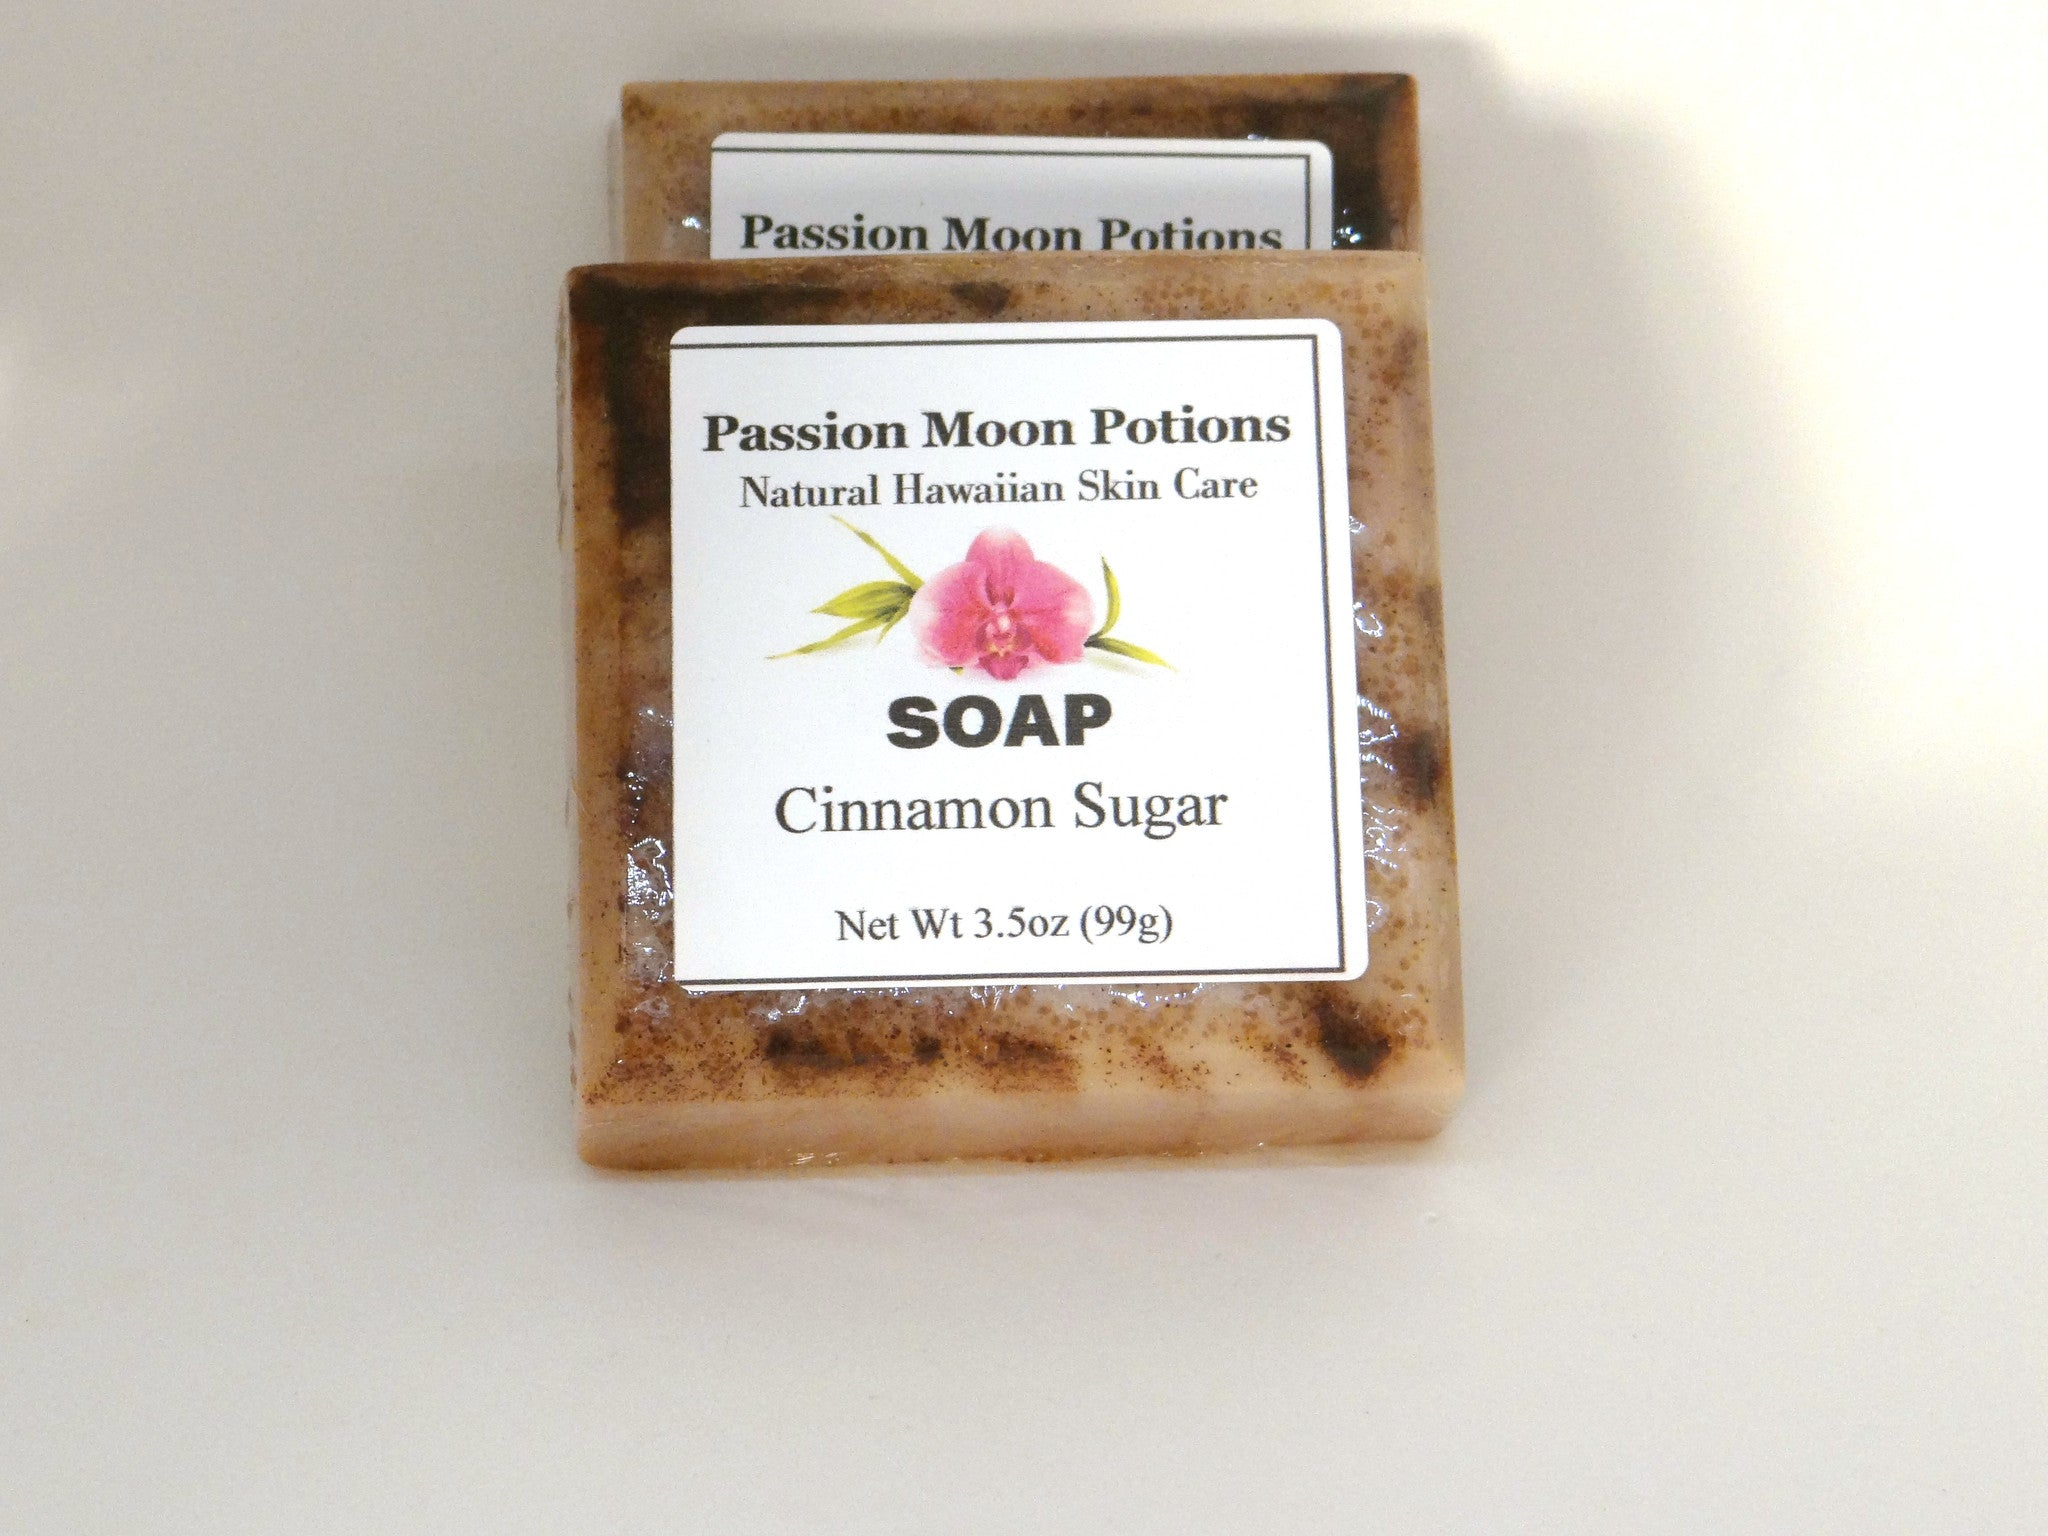 Cinnamon Sugar Soap - Passion Moon Potions - 2